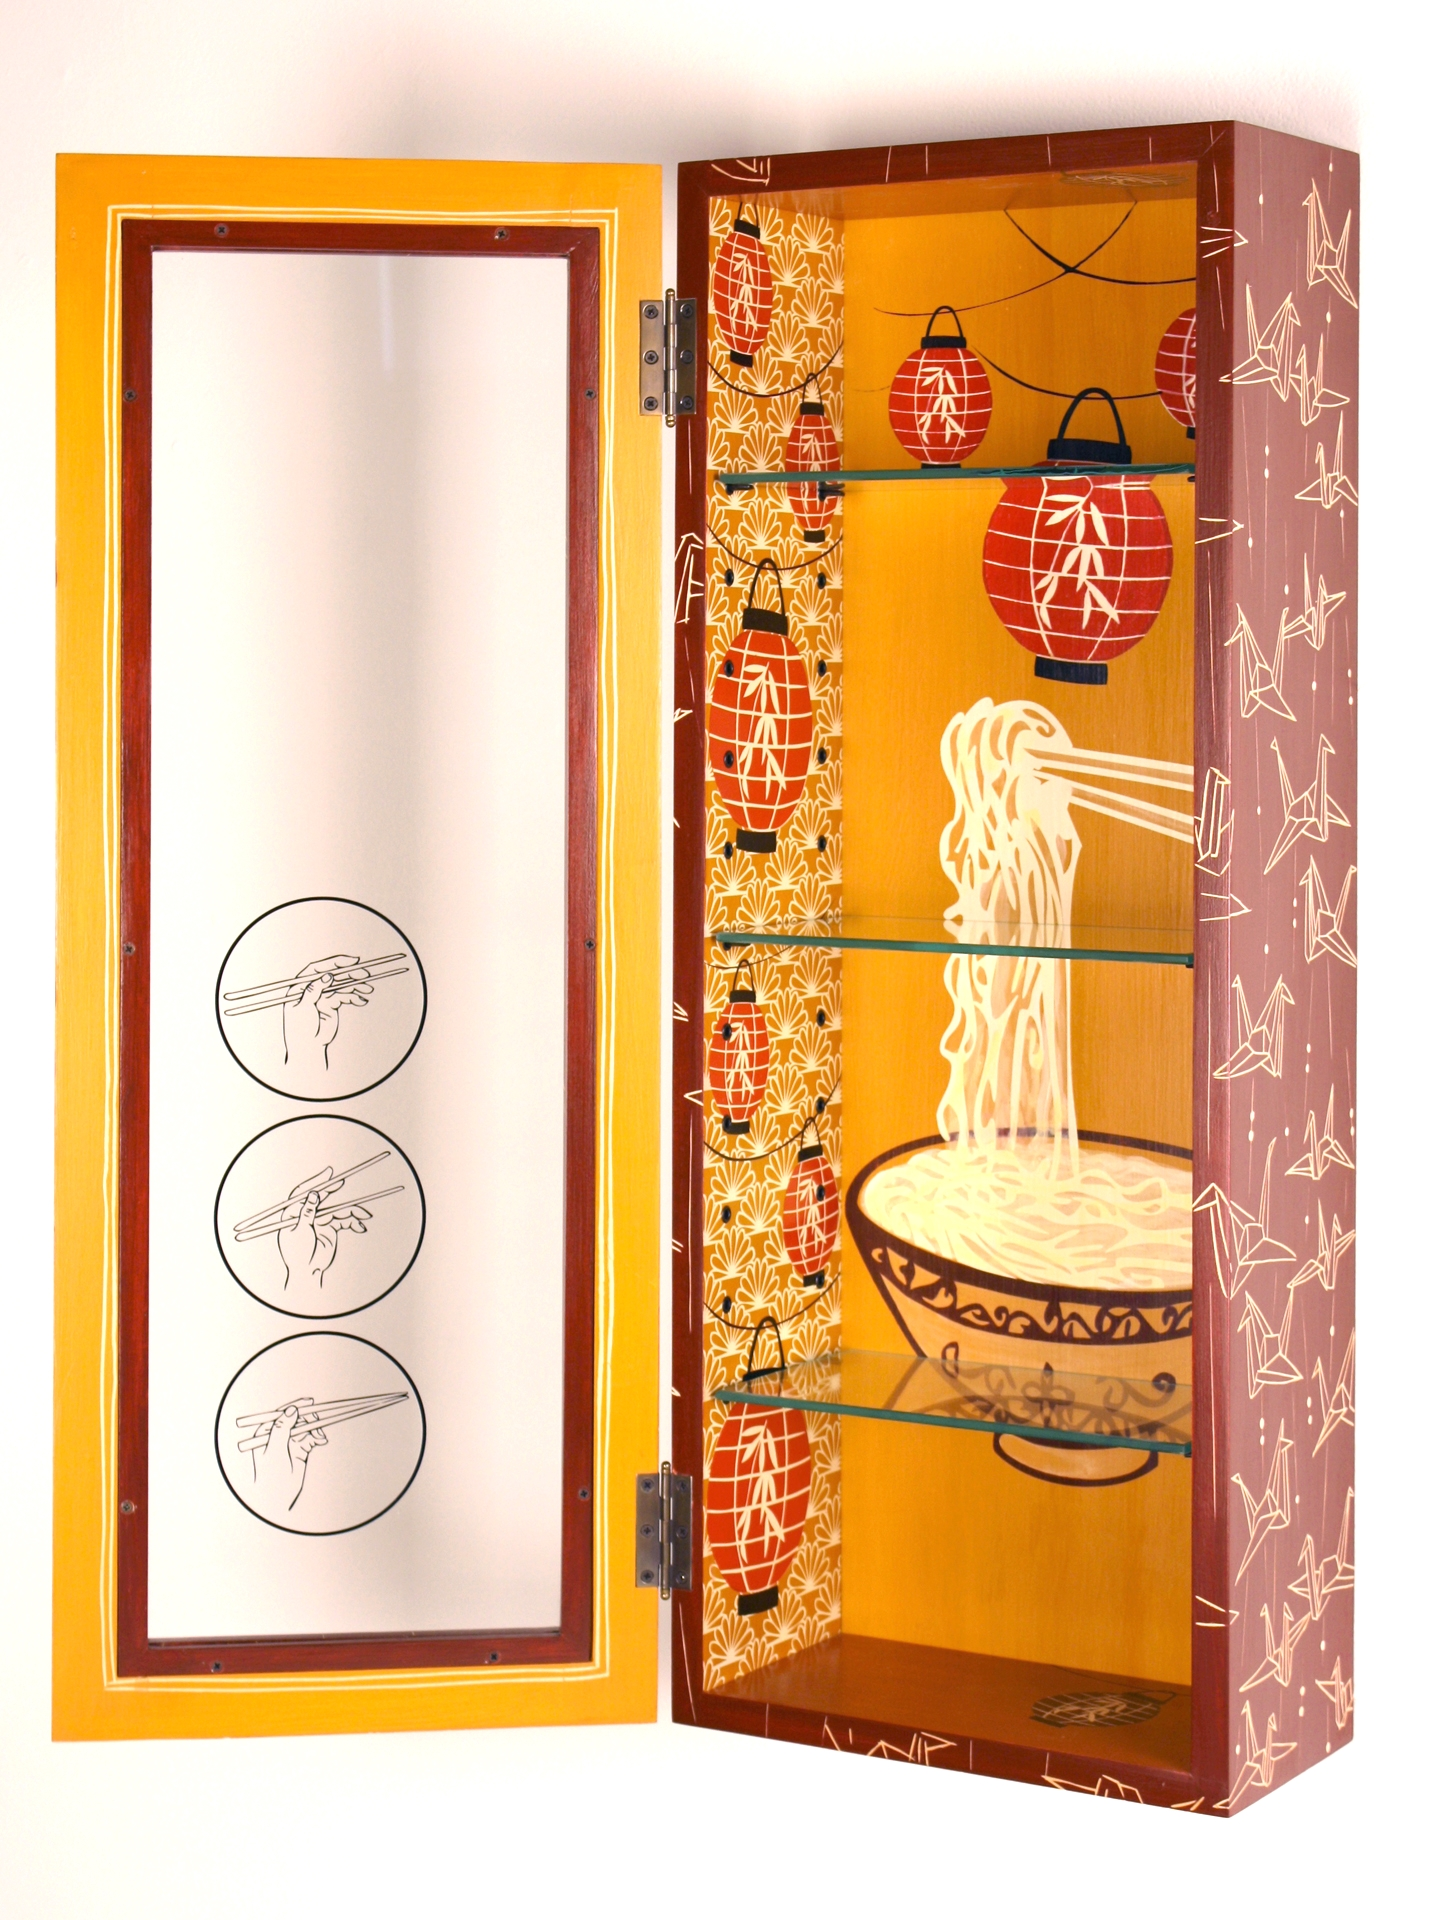 Kyoto Nights Cabinet (inside view)